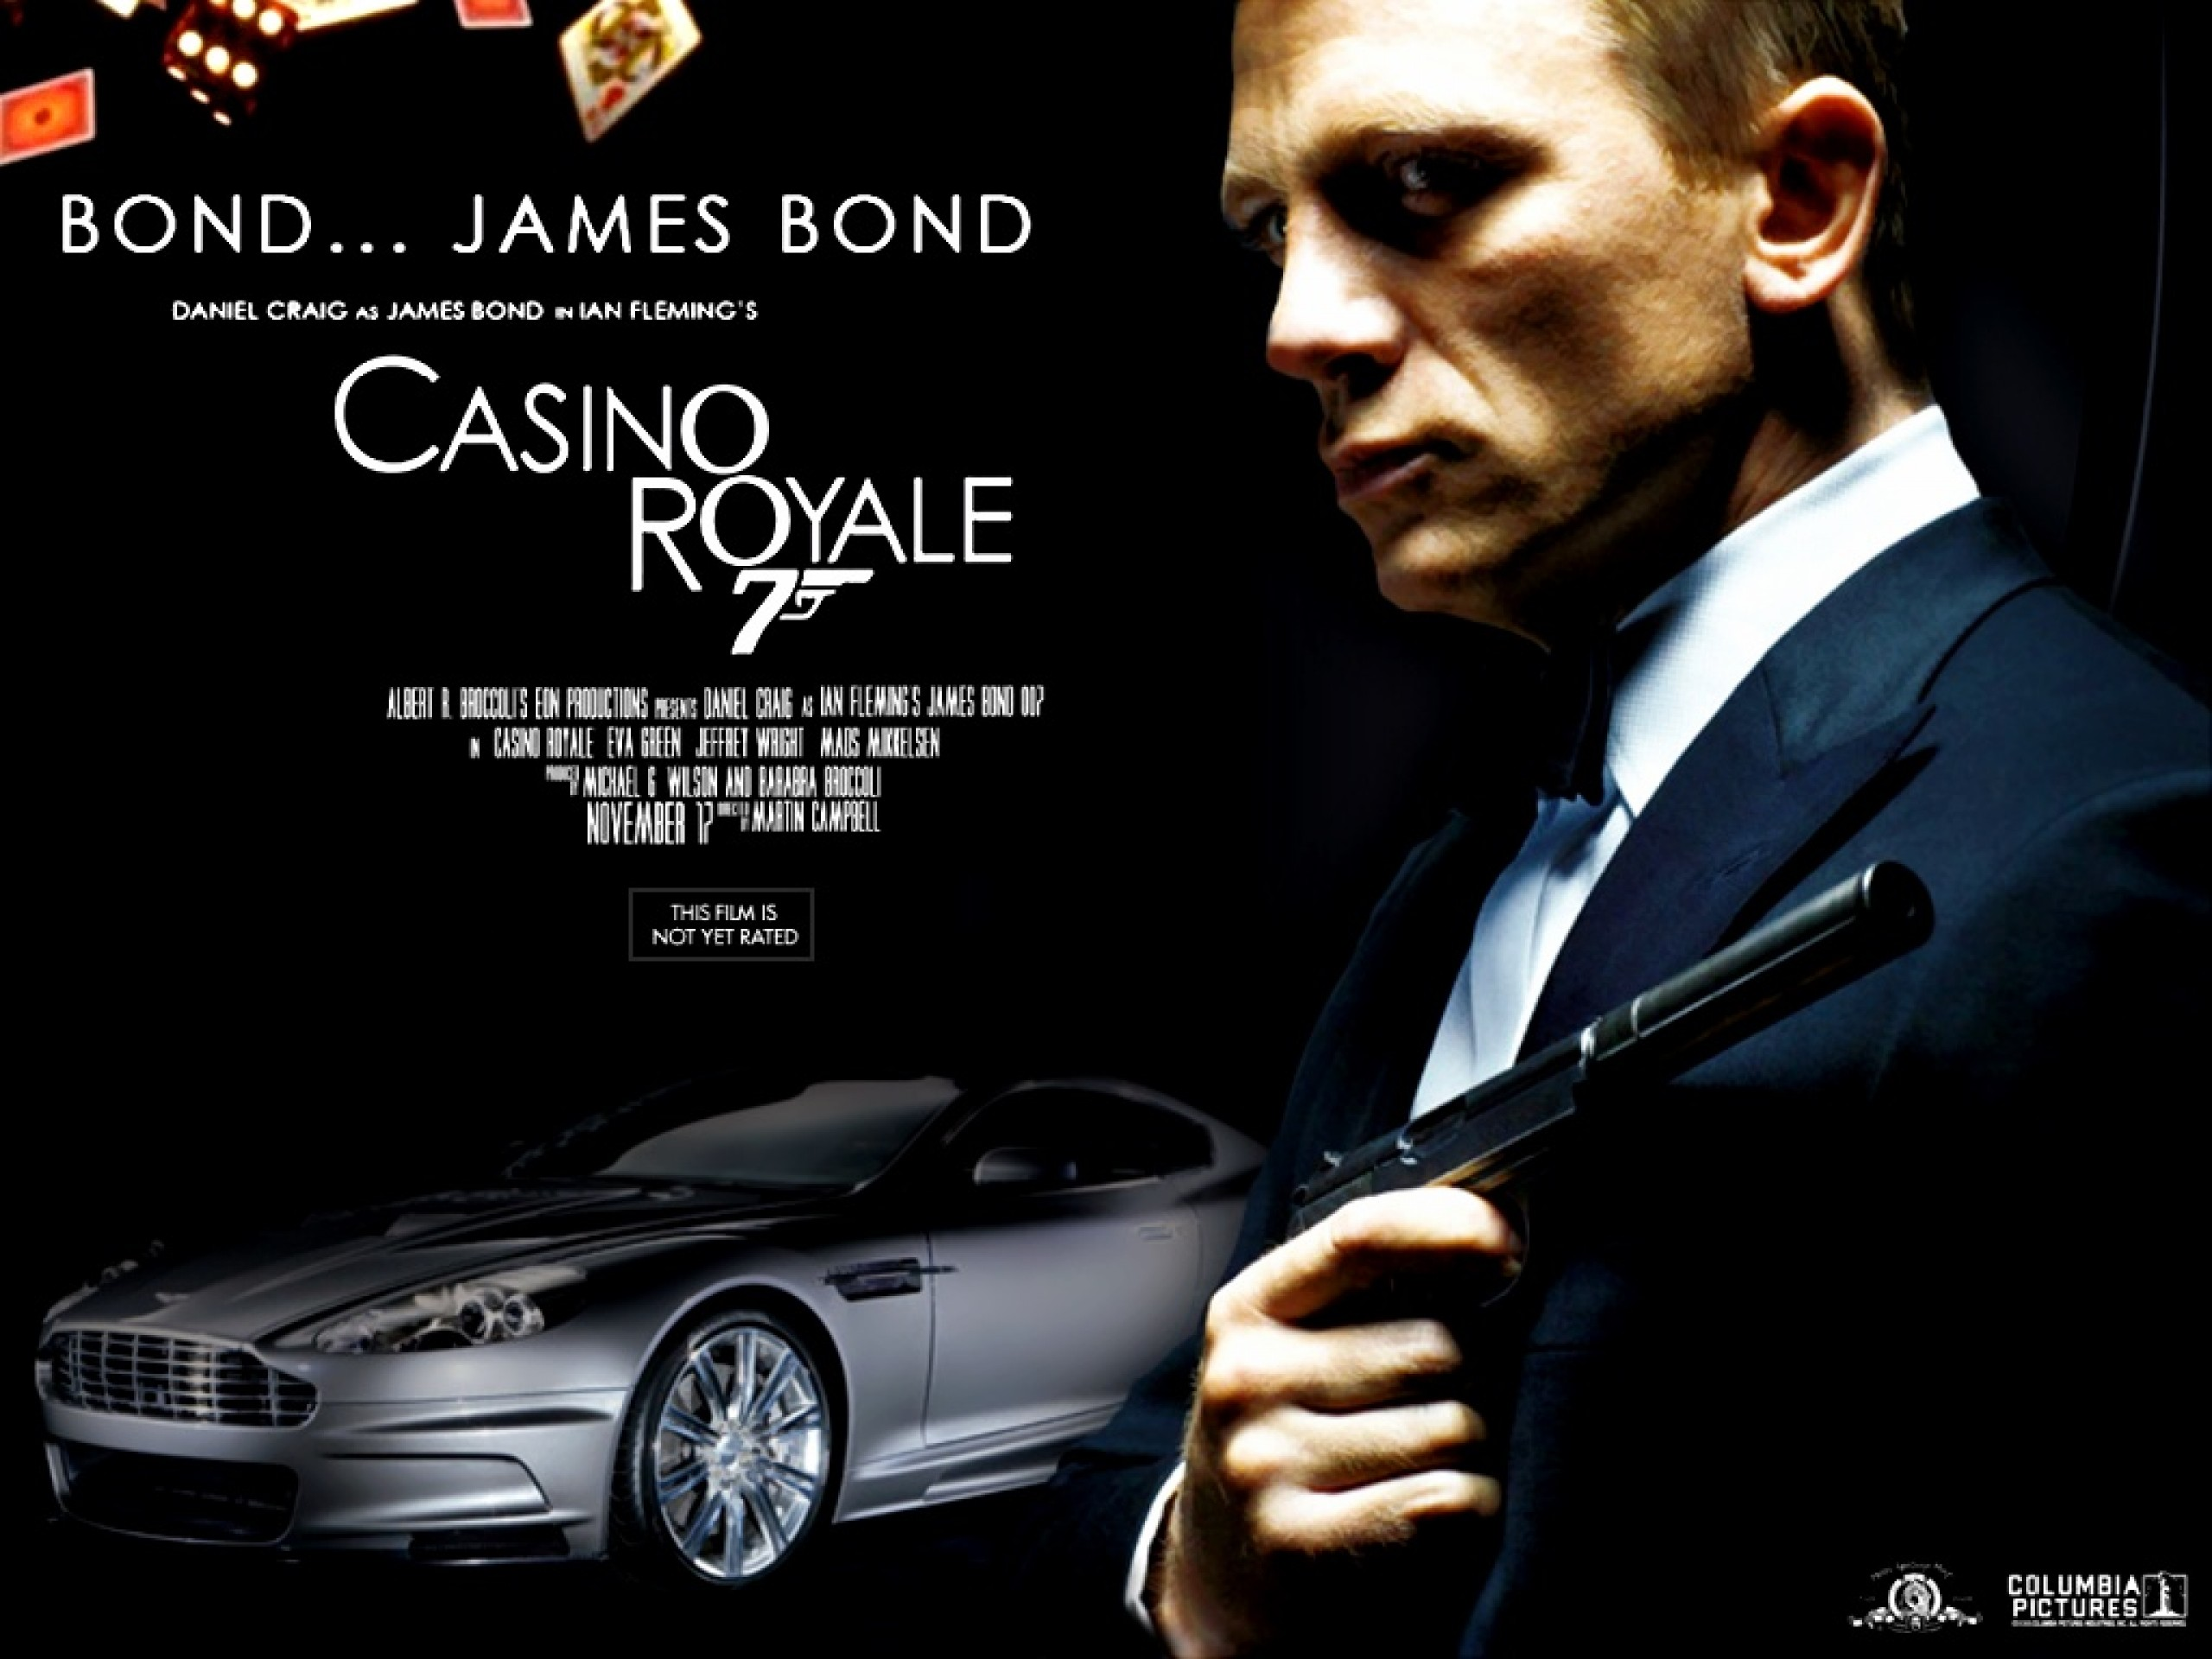 casino royale james bond full movie online power star